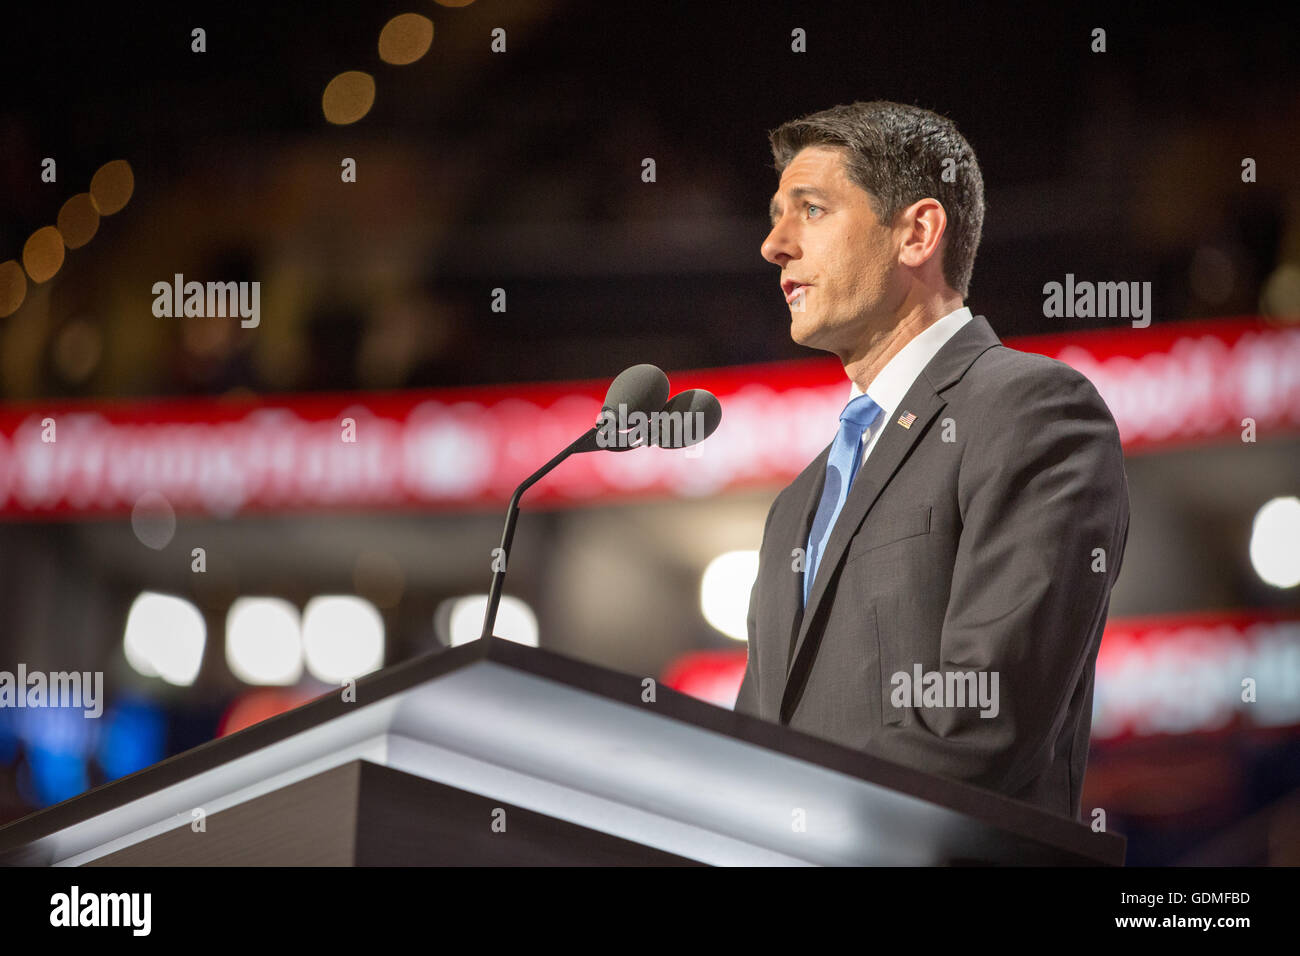 Cleveland, Ohio, USA. 19th July, 2016. Speaker of the House Paul Ryan, on the second night of Republican National - Stock Image